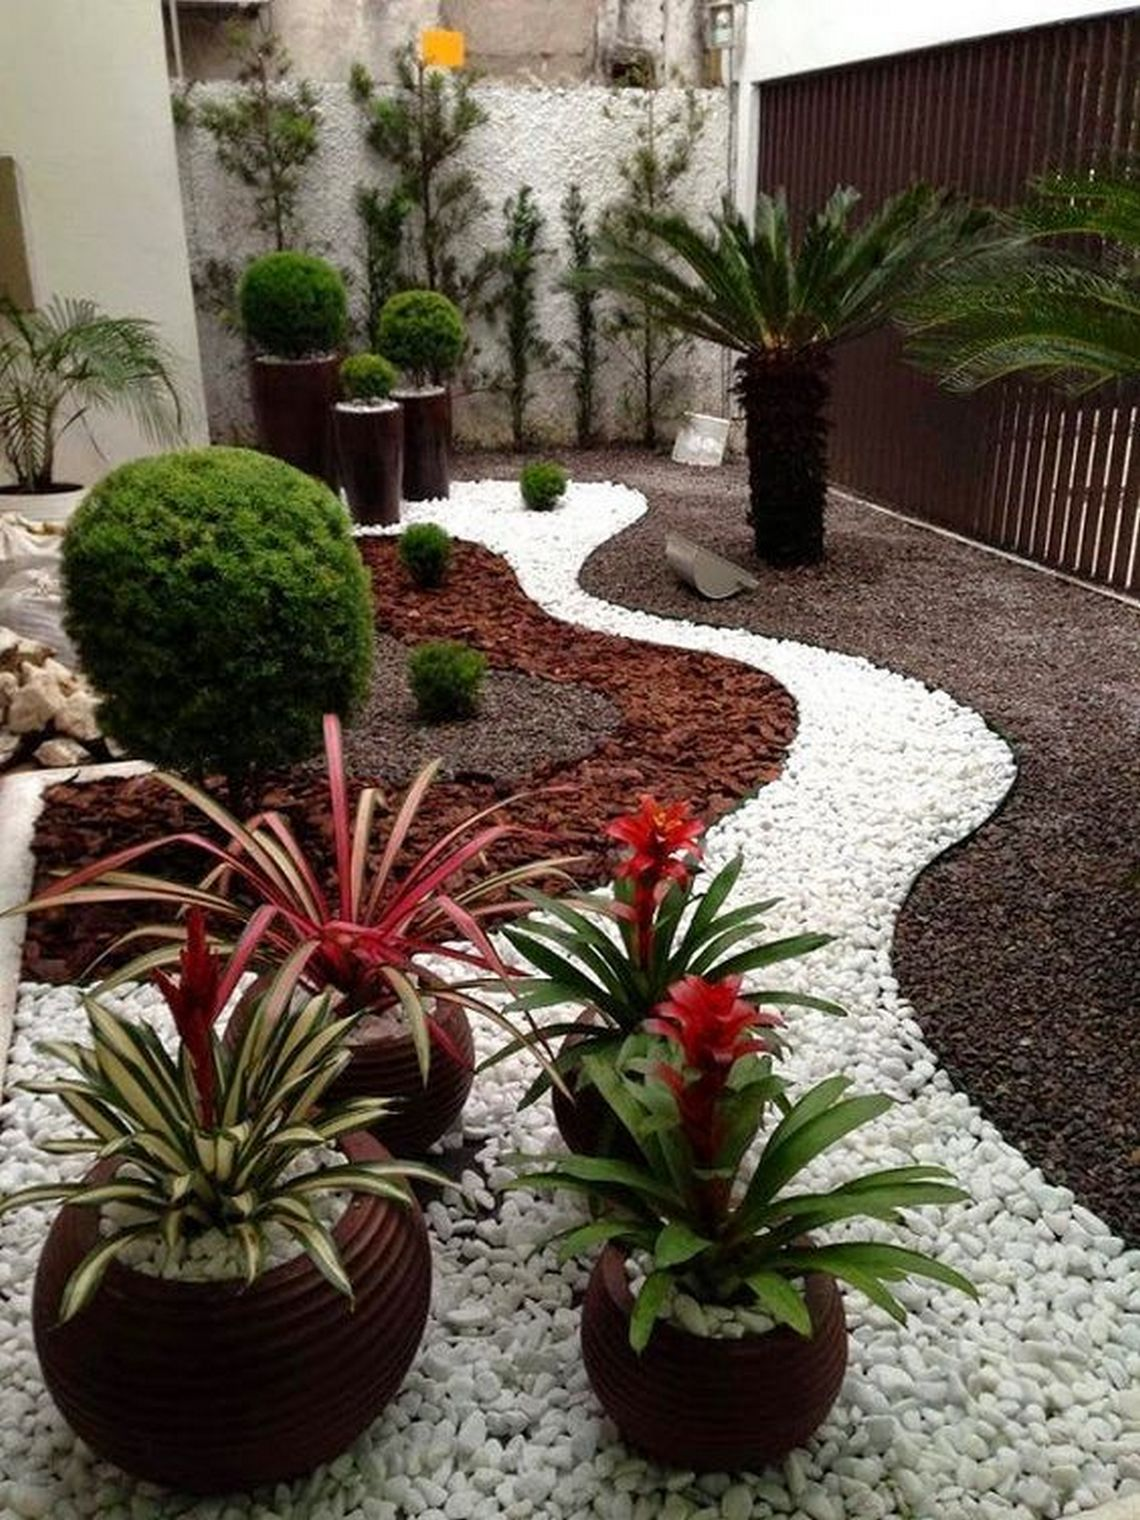 91 Small Backyard Landscape Decoration Models Are Simple And Look Creative 10